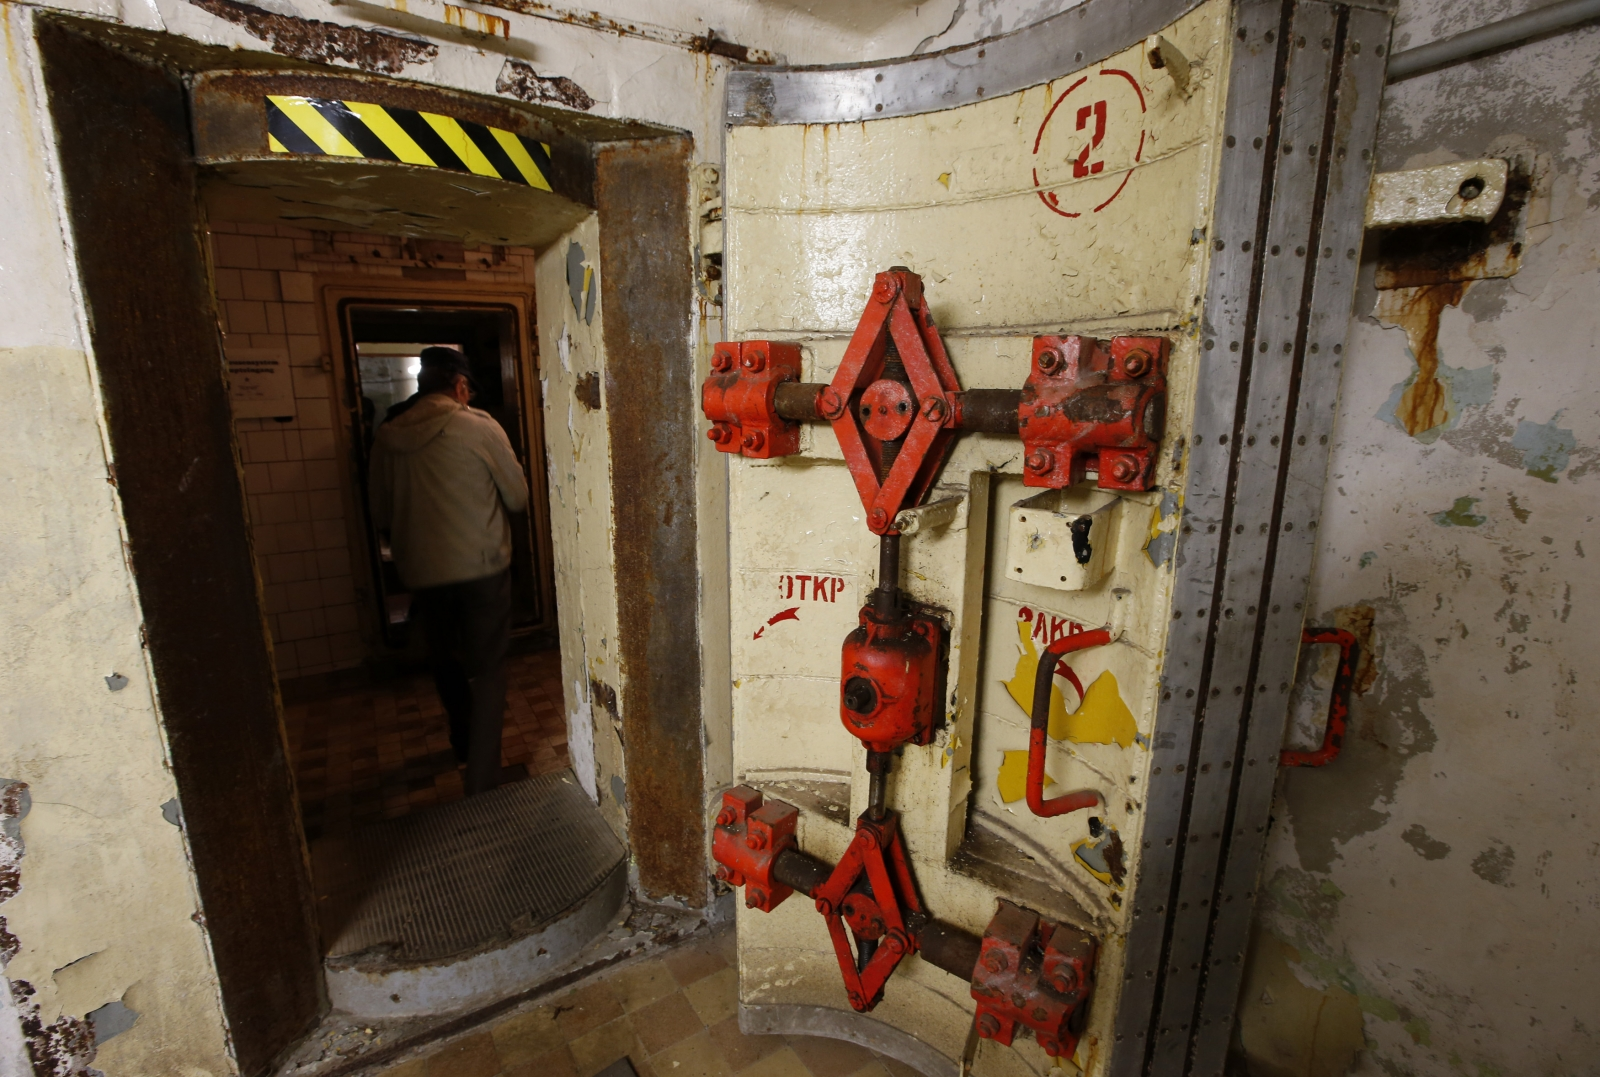 A guide walks next to a heavily fortified door to a bunker used after 1945 till 1994 by the Soviet army as the so-called